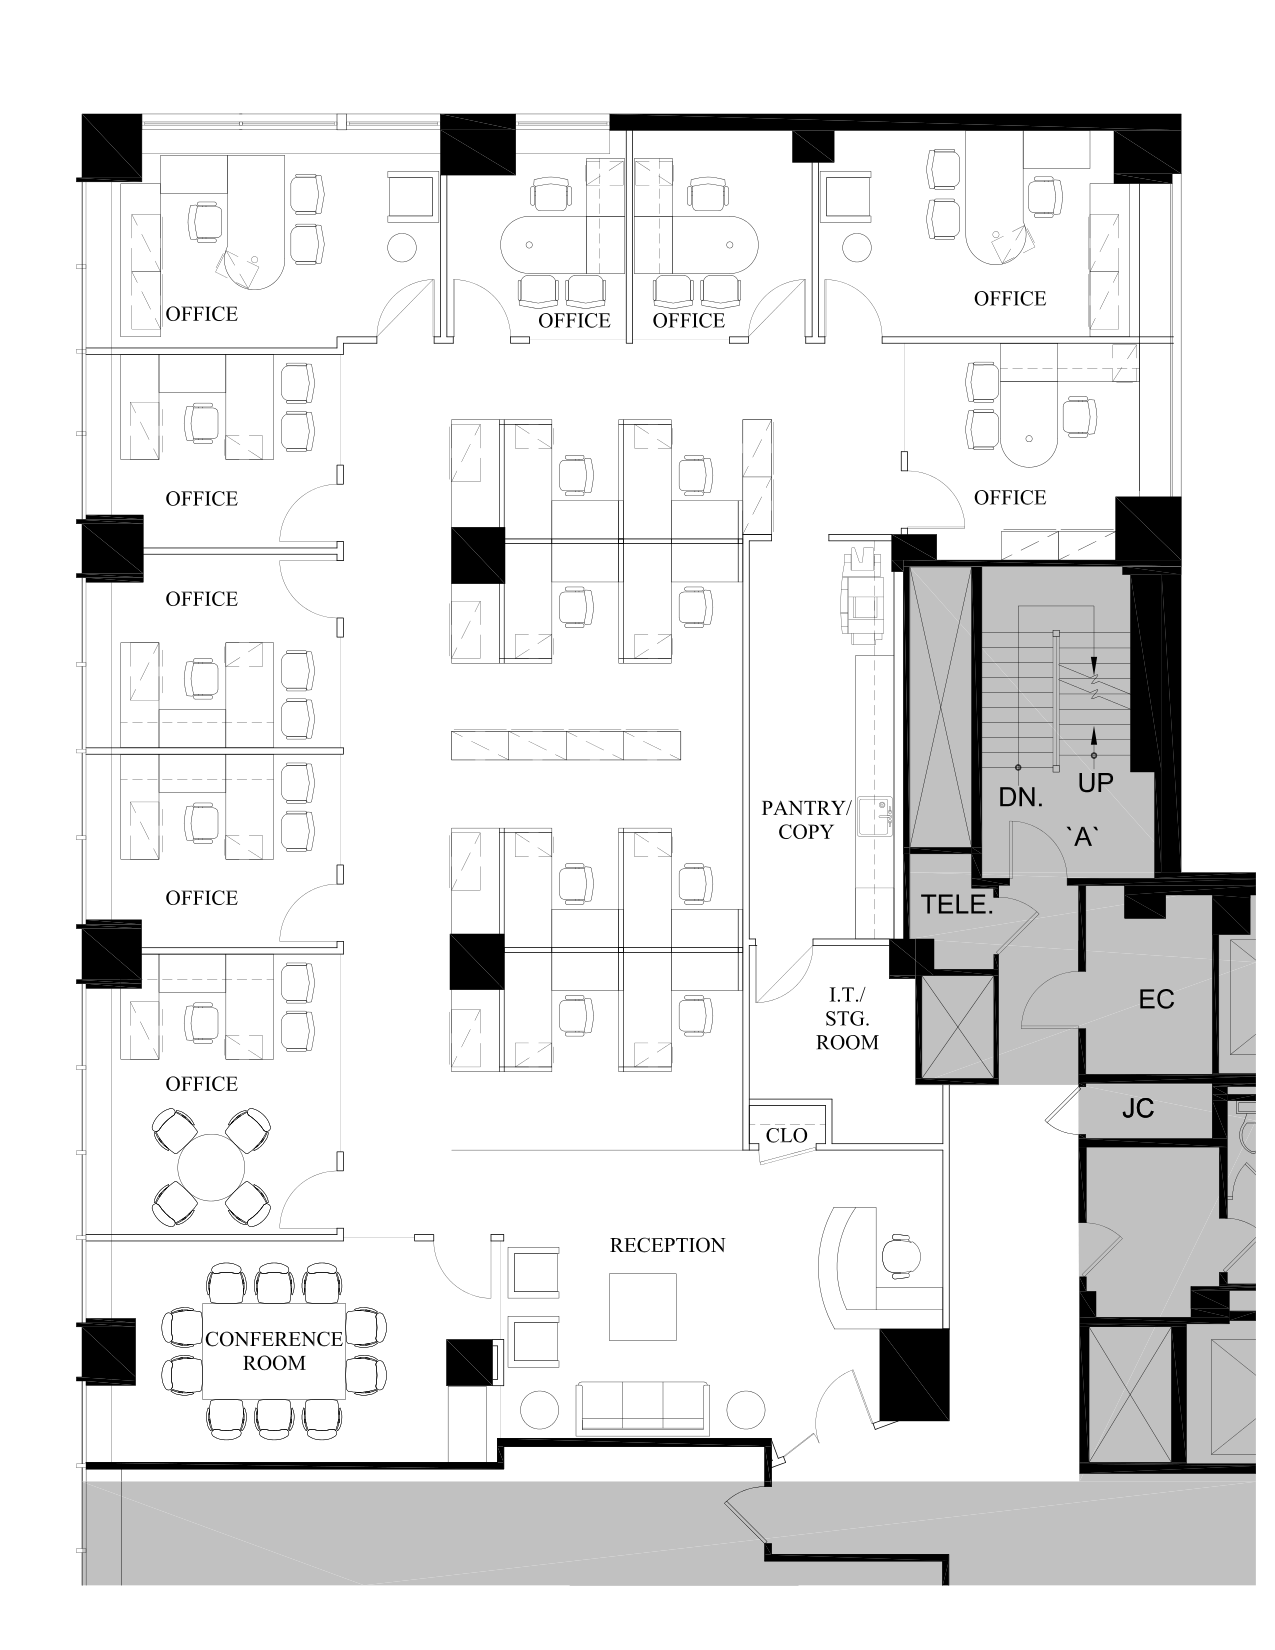 800 third avenue 3rd floor vts for Vice president house floor plan